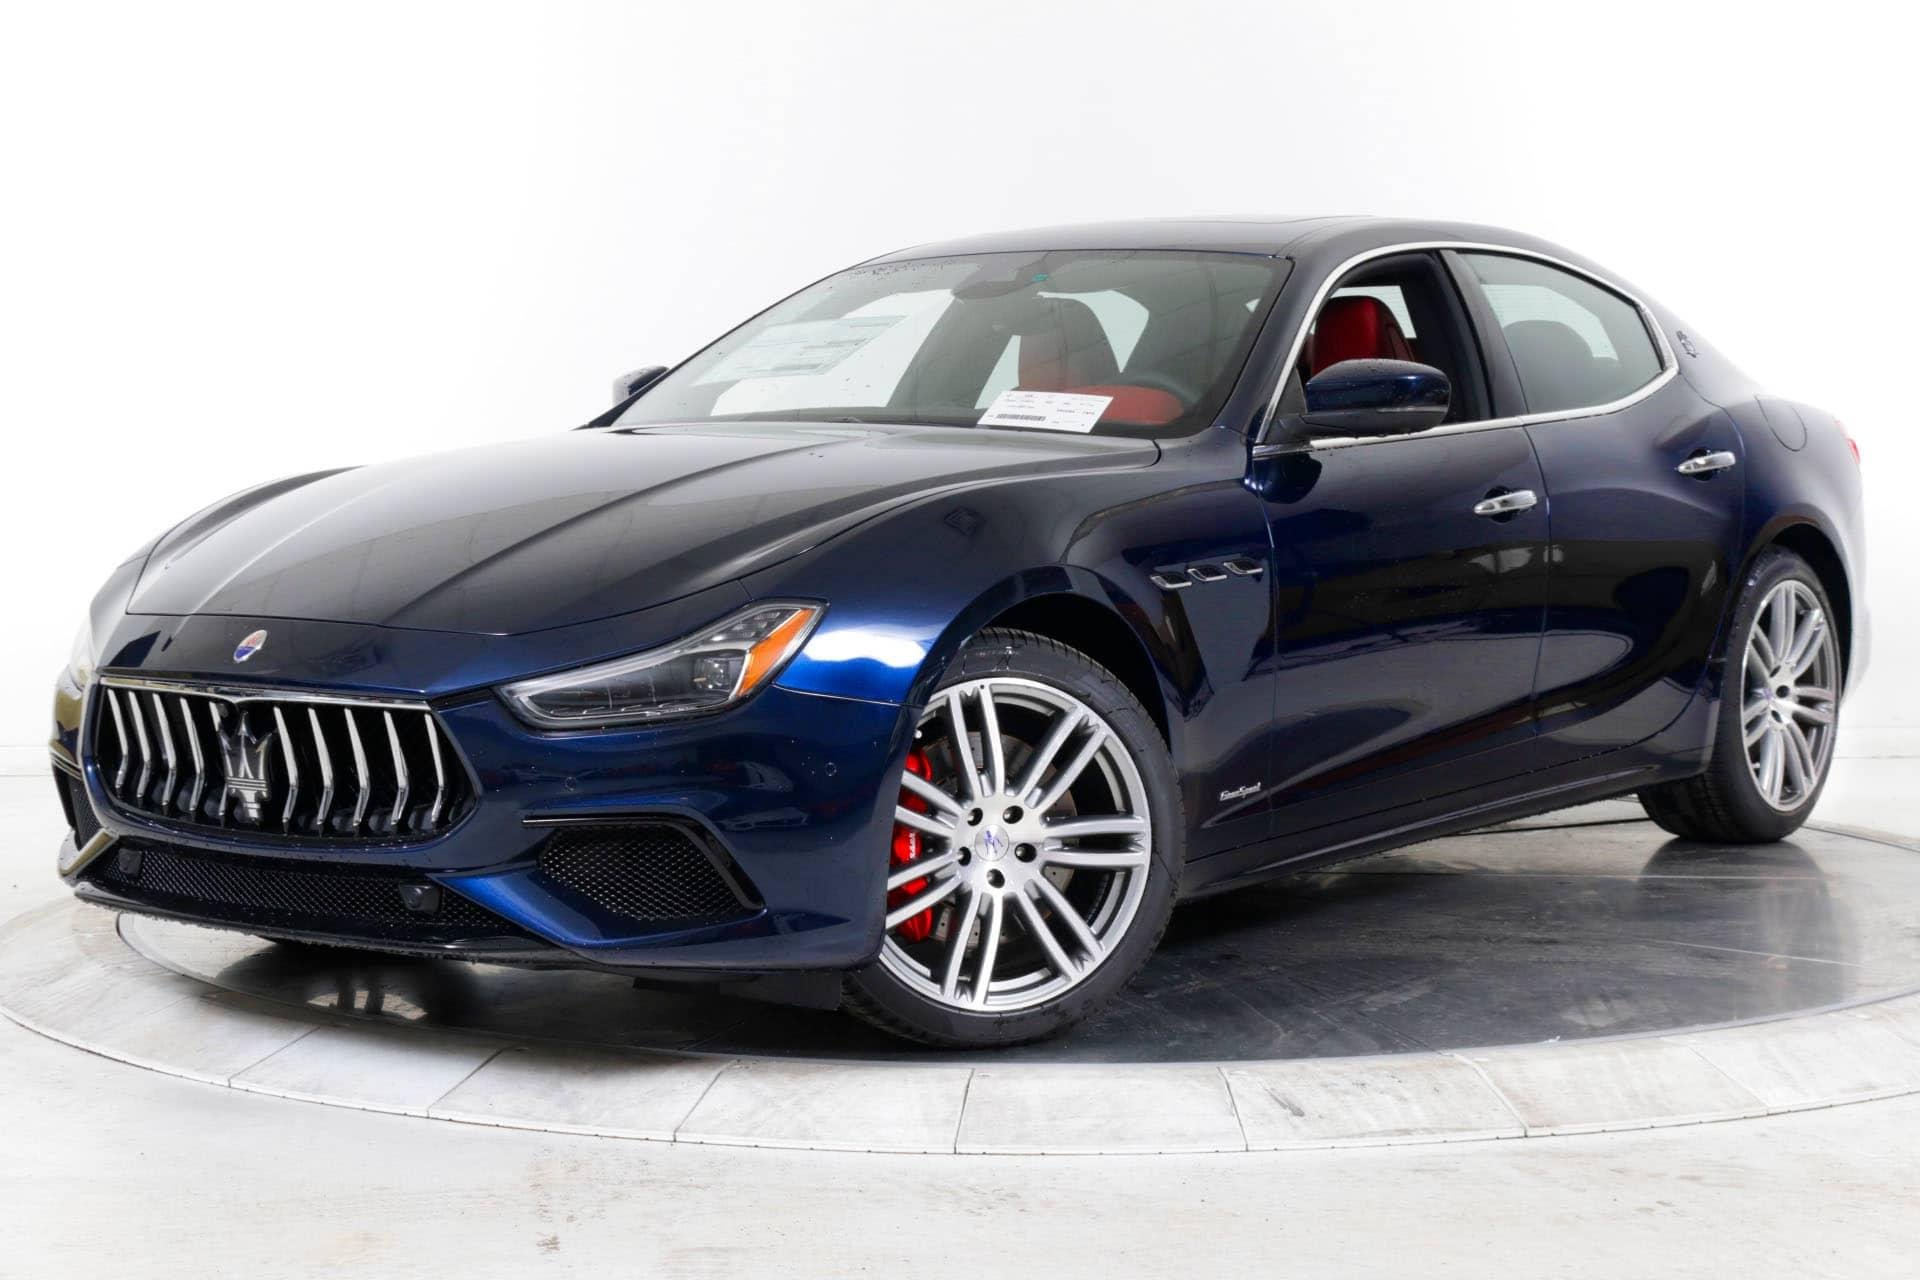 New 2019 Maserati-Ghibli SQ4 GranSport Ghibli SQ4 GranSport for sale $87,780 at M and V Leasing in Brooklyn NY 11223 1